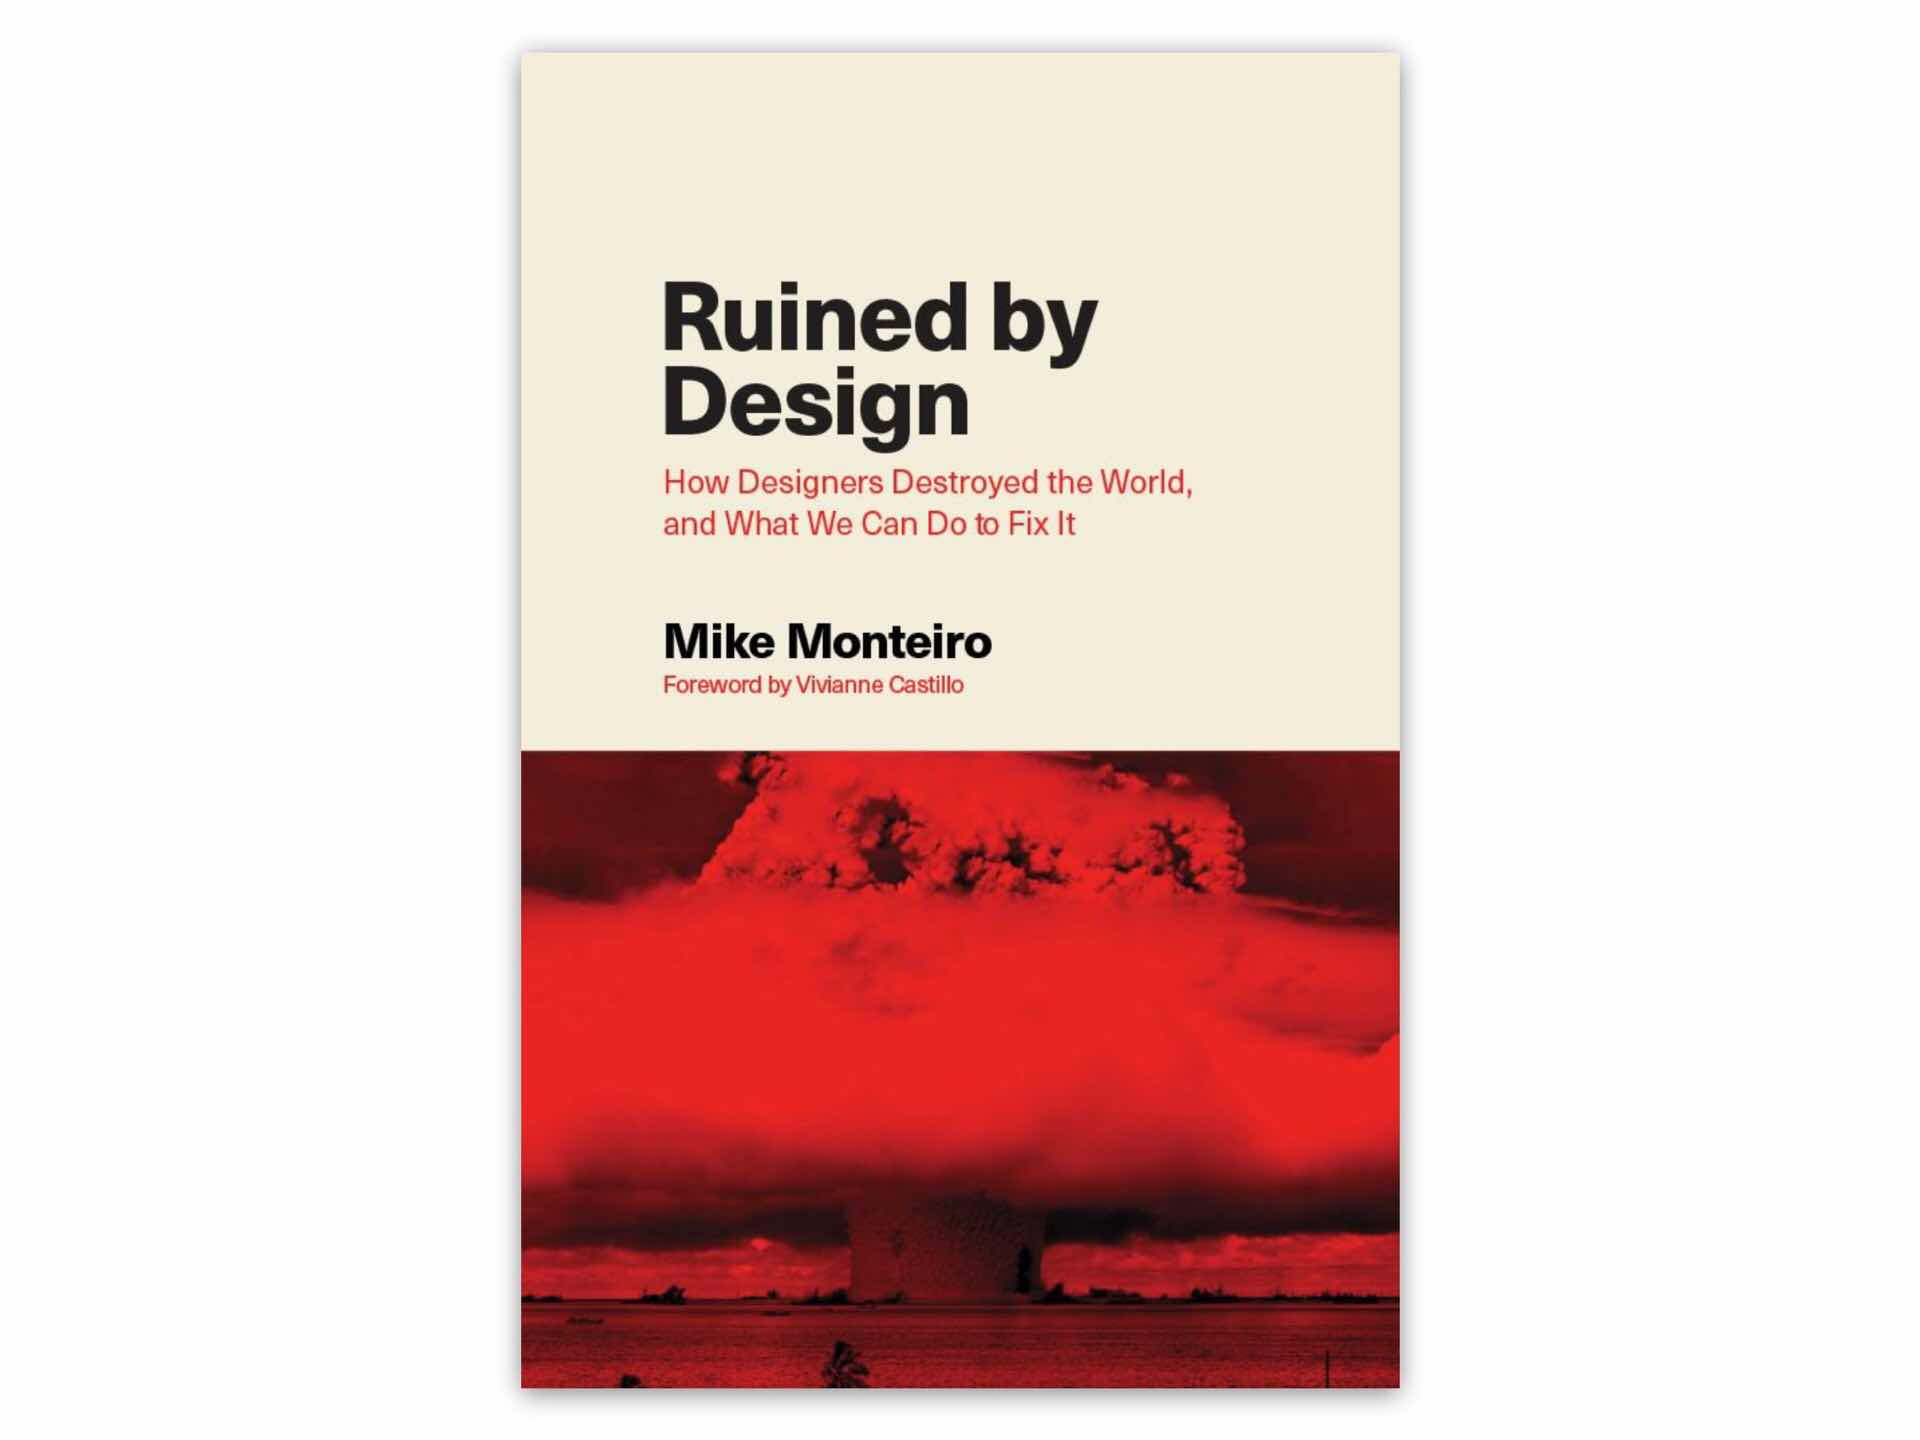 Ruined by Design by Mike Monteiro.